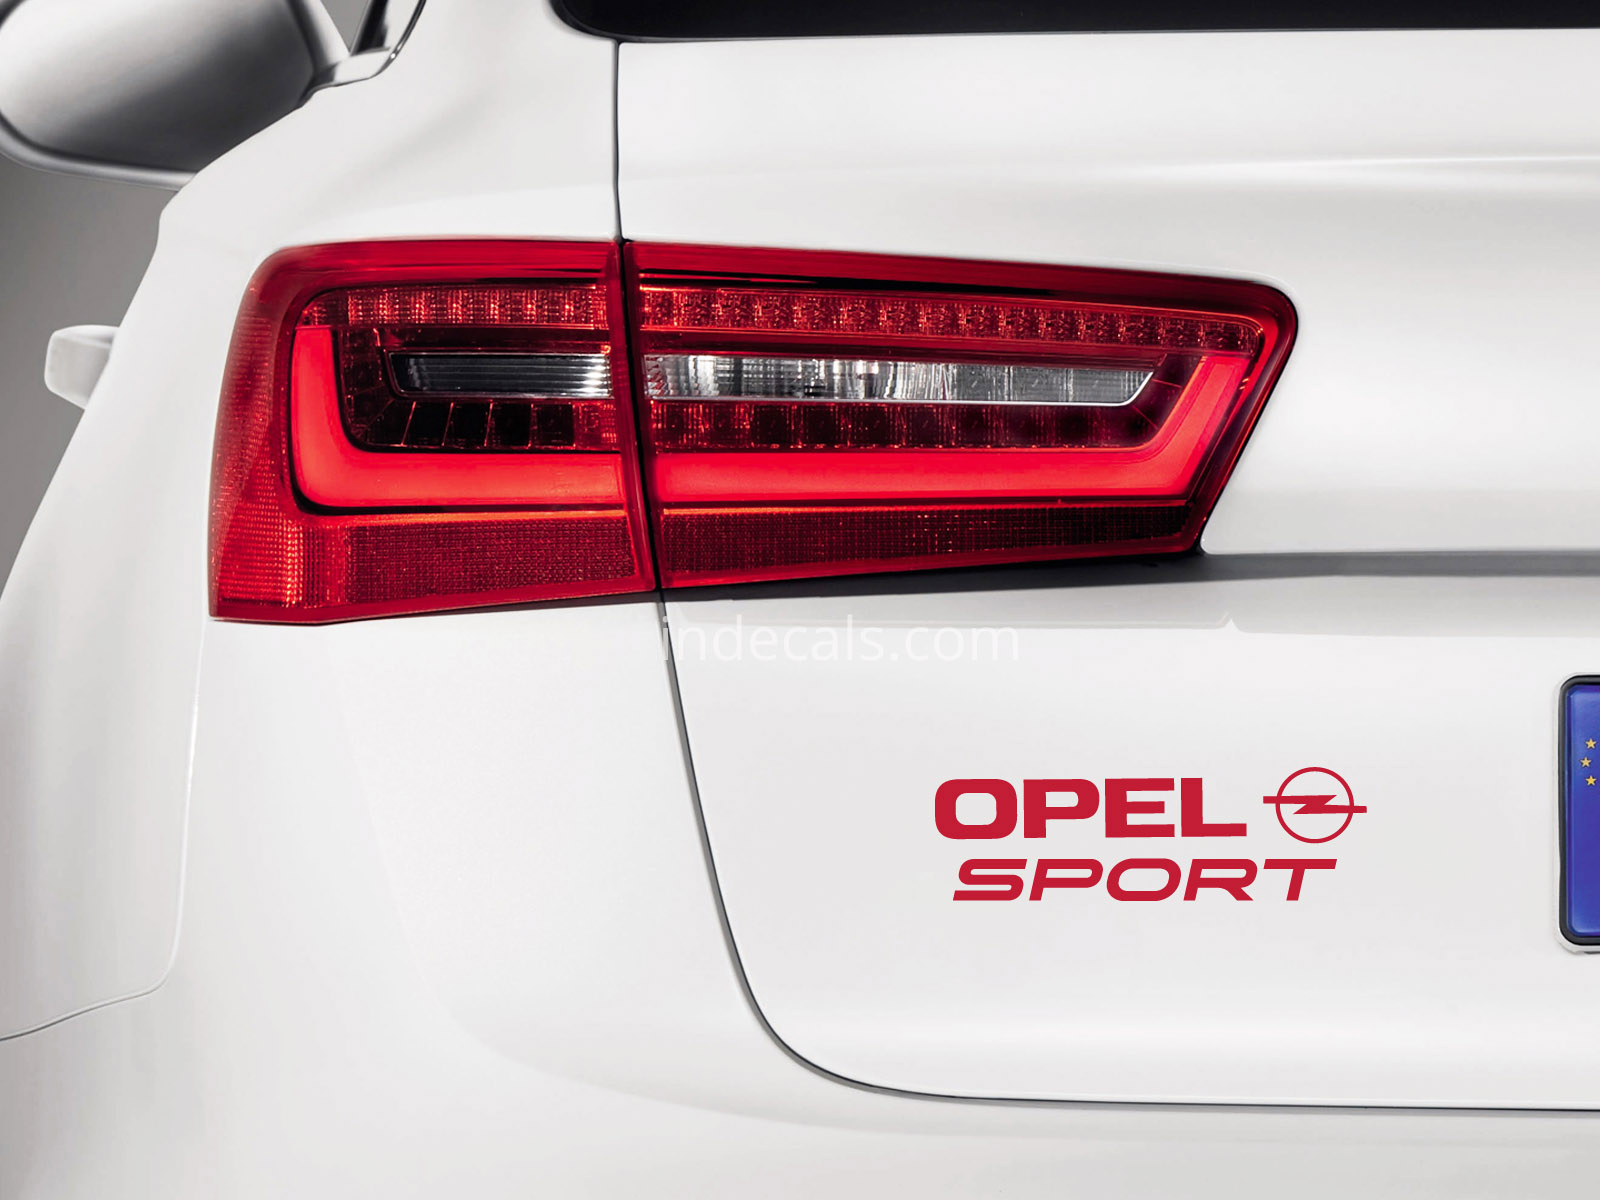 1 x Opel Sports Sticker for Trunk - Red